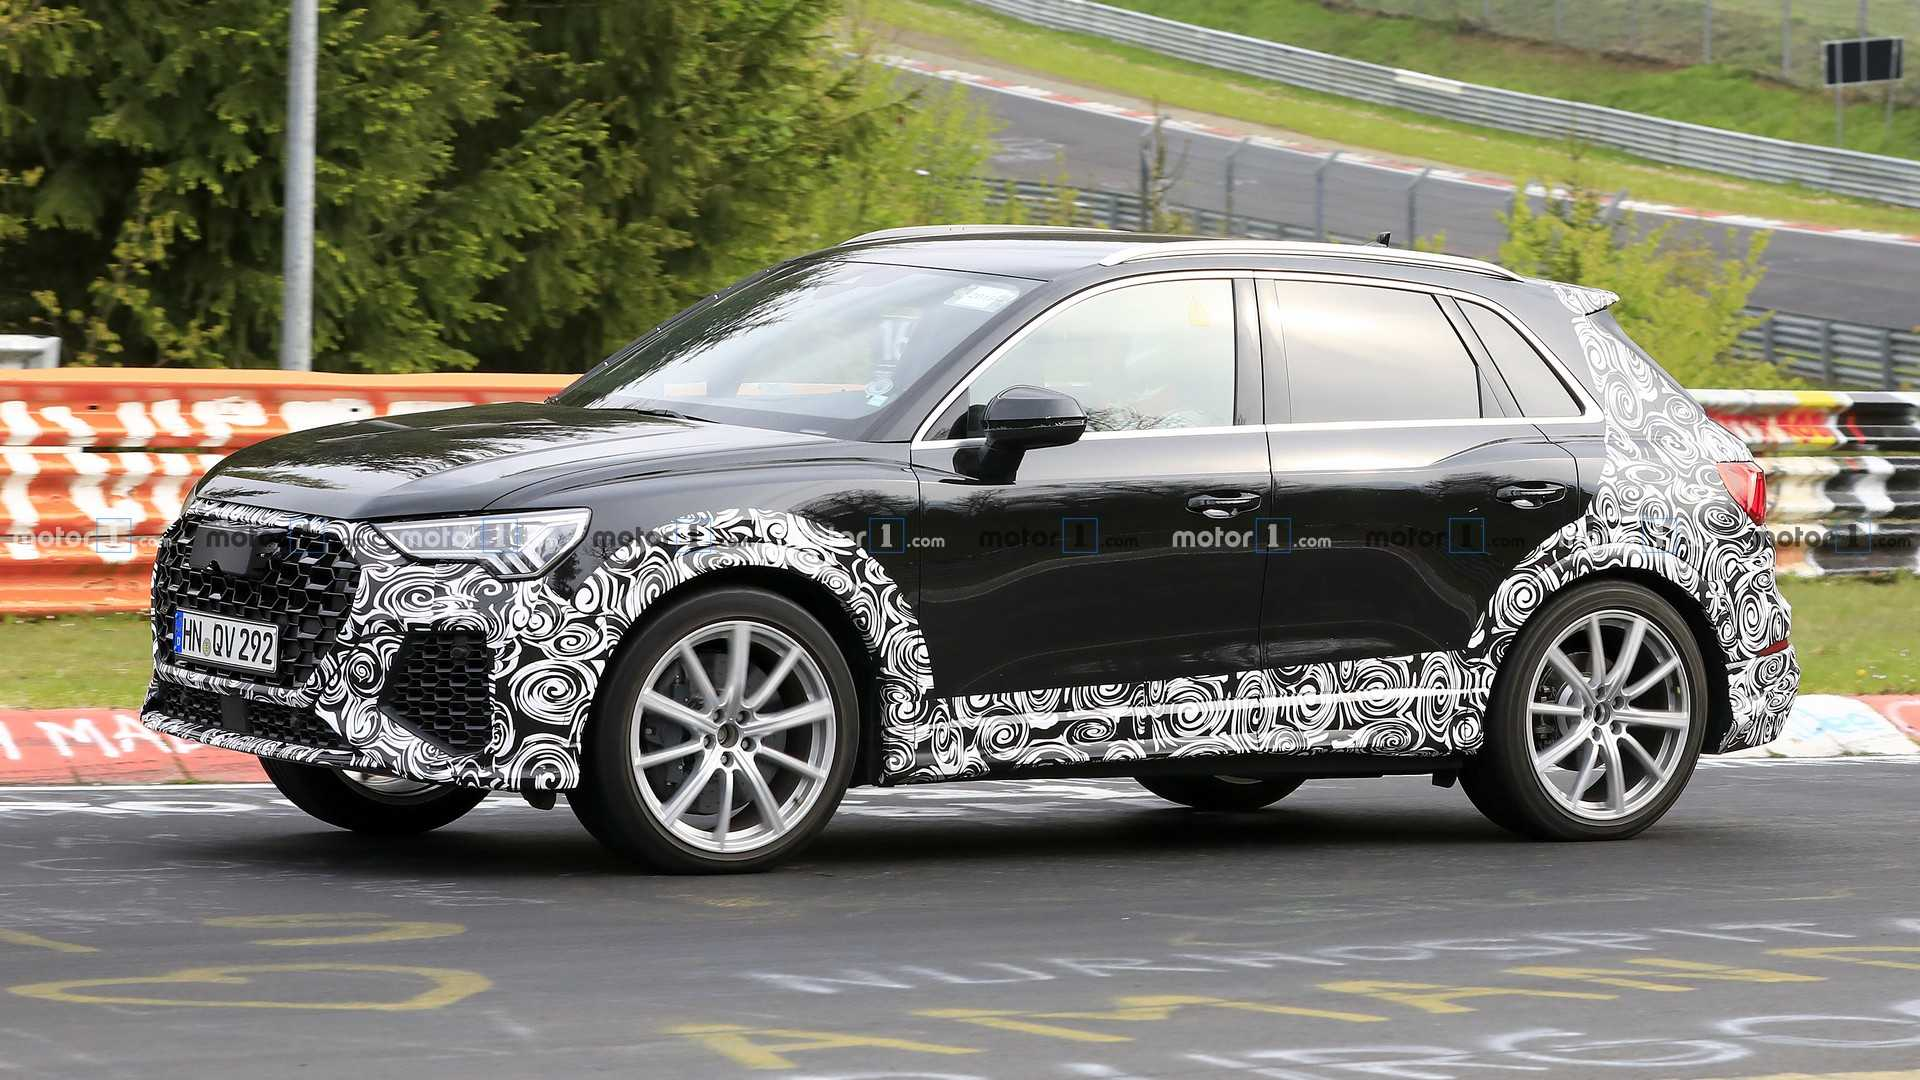 2020 Audi Q3: News, RS Q3, Specs, Release >> 2020 Audi Rs Q3 Spotted With Wide Body At The Nurburgring